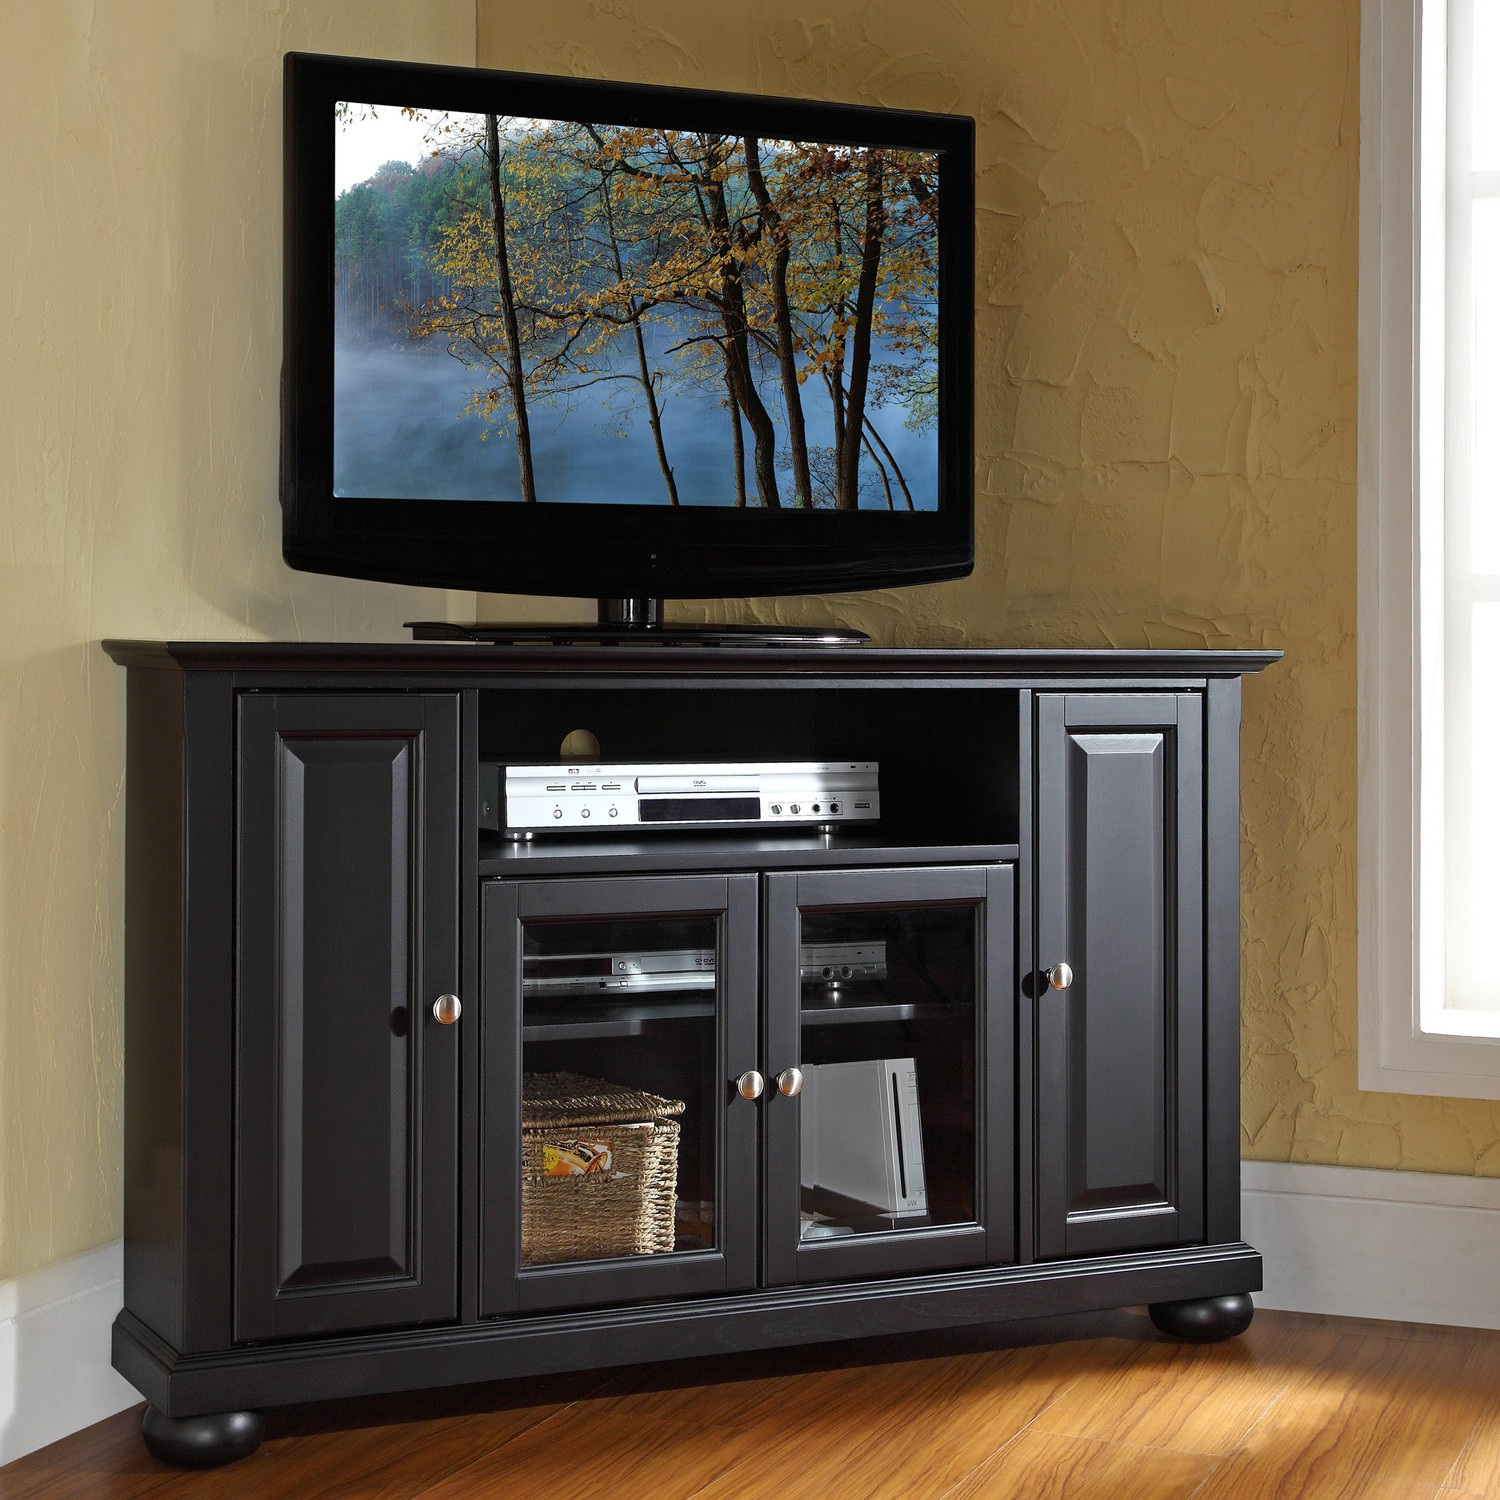 Corner Exhibition Stands Canada : Corner tv stand canada download page home design ideas